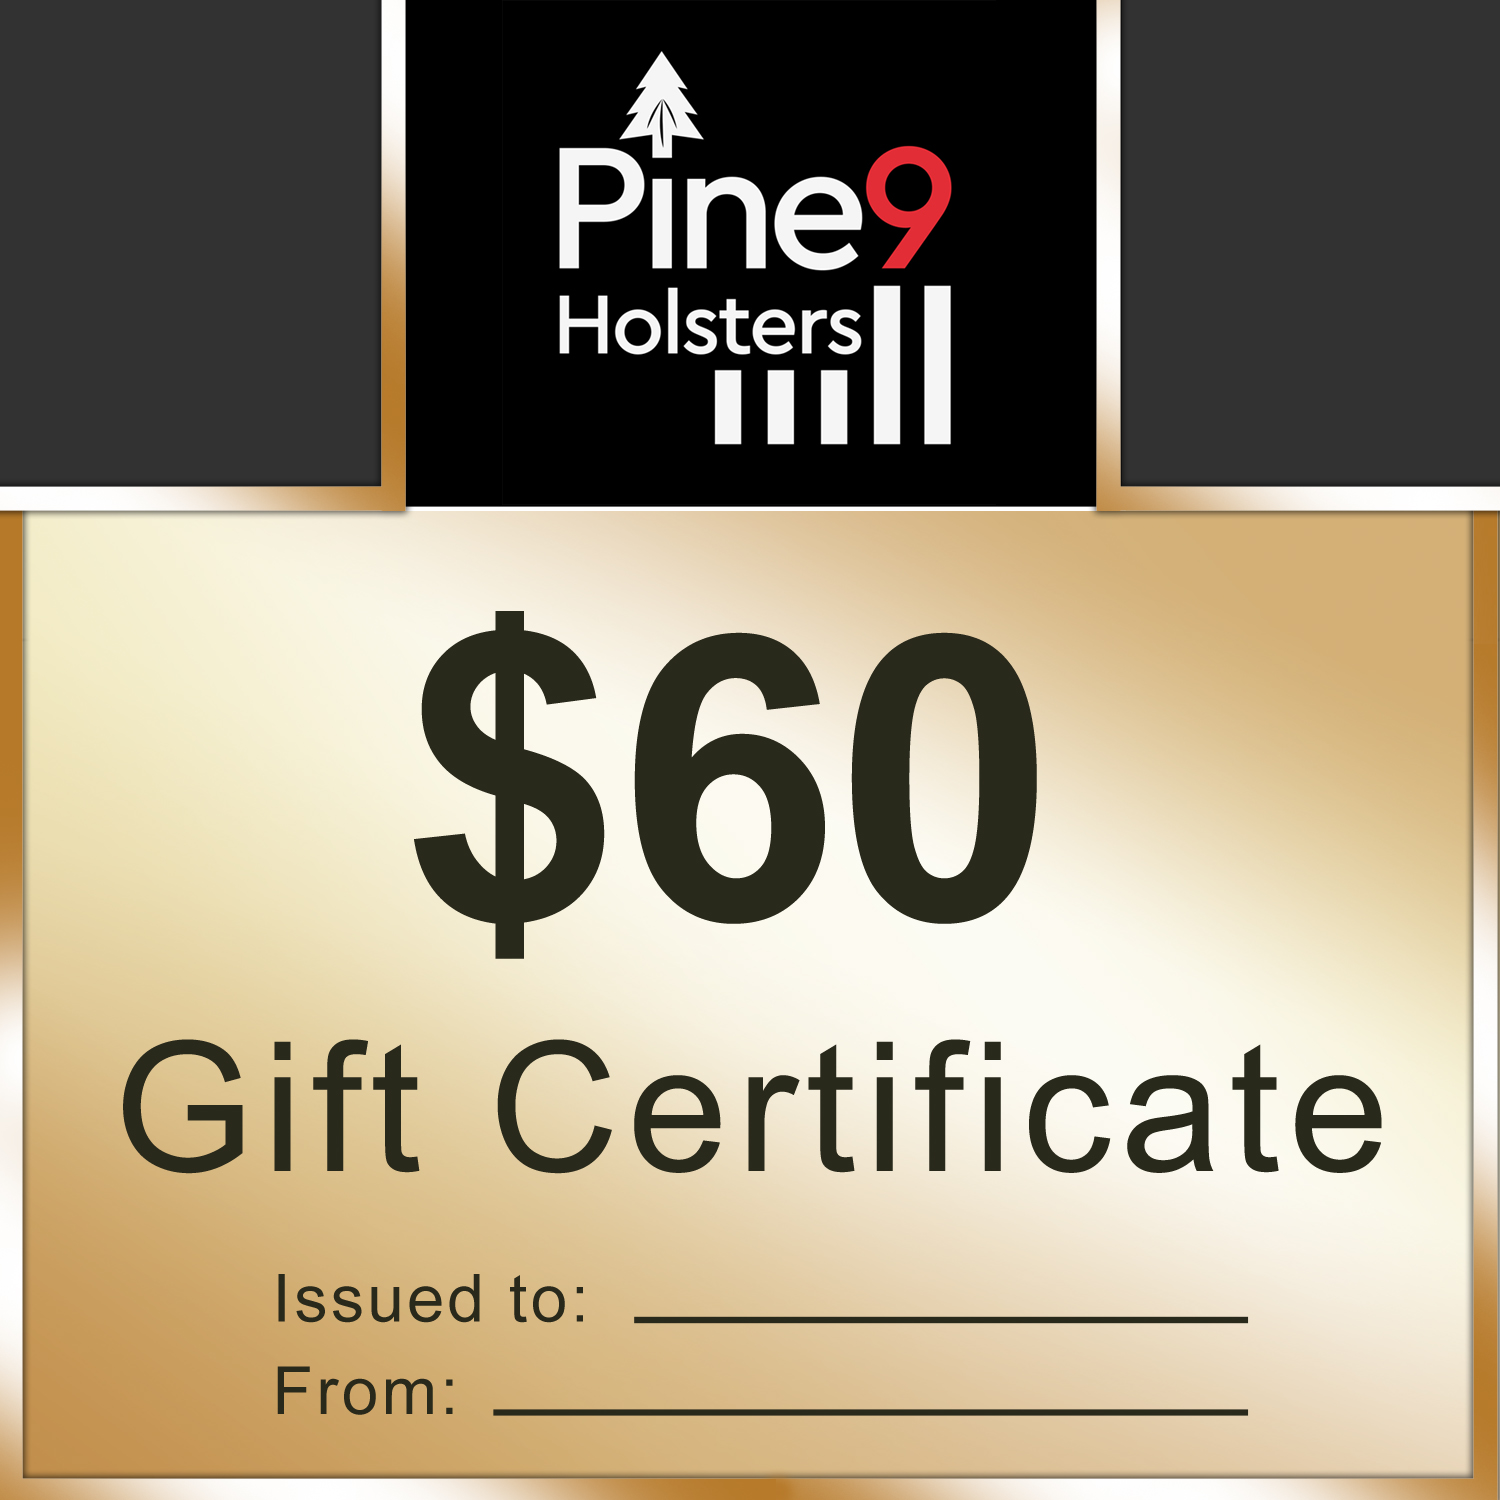 Pine9 Holsters gift certificate 60